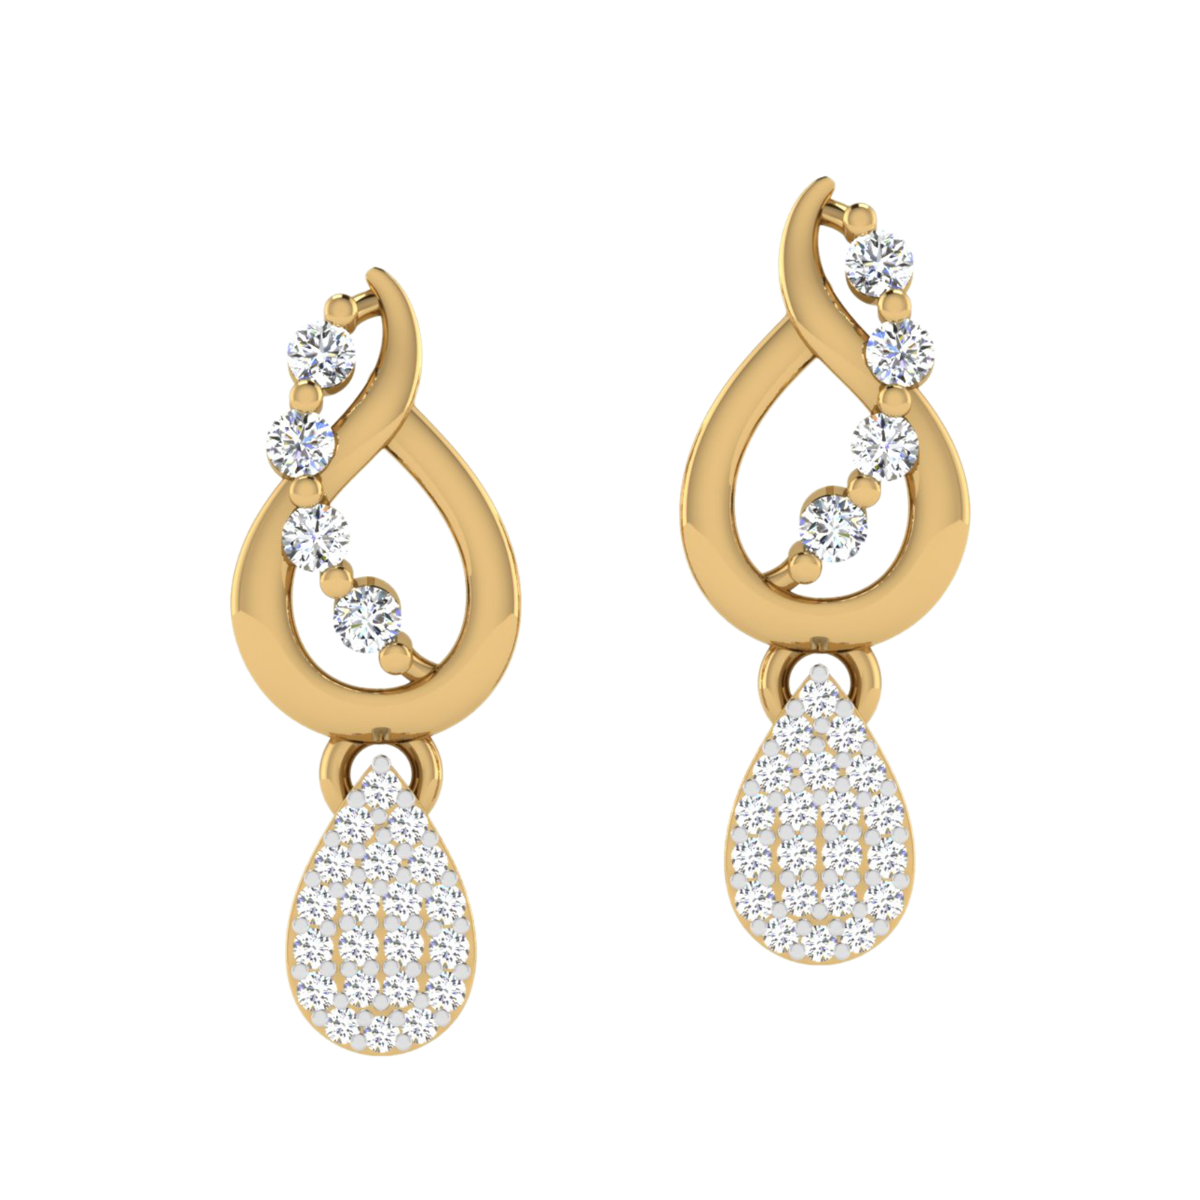 Dripping Droplets Diamond Stud Earrings